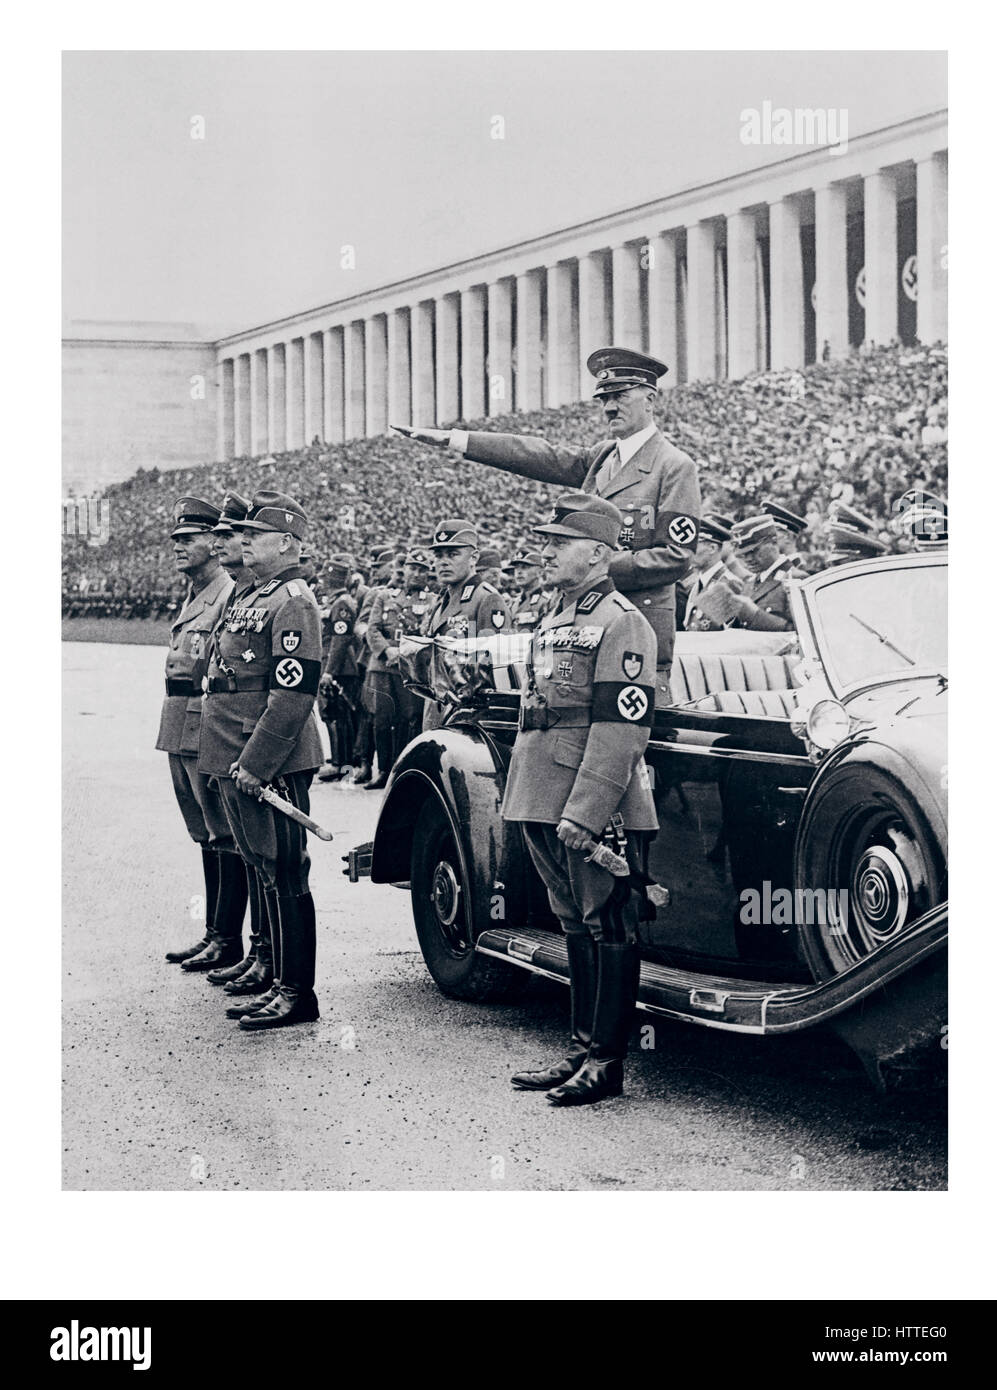 NUREMBERG RALLY Chancellor Adolf Hitler in uniform wearing a swastika armband, standing in his Mercedes car, saluting - Stock Image